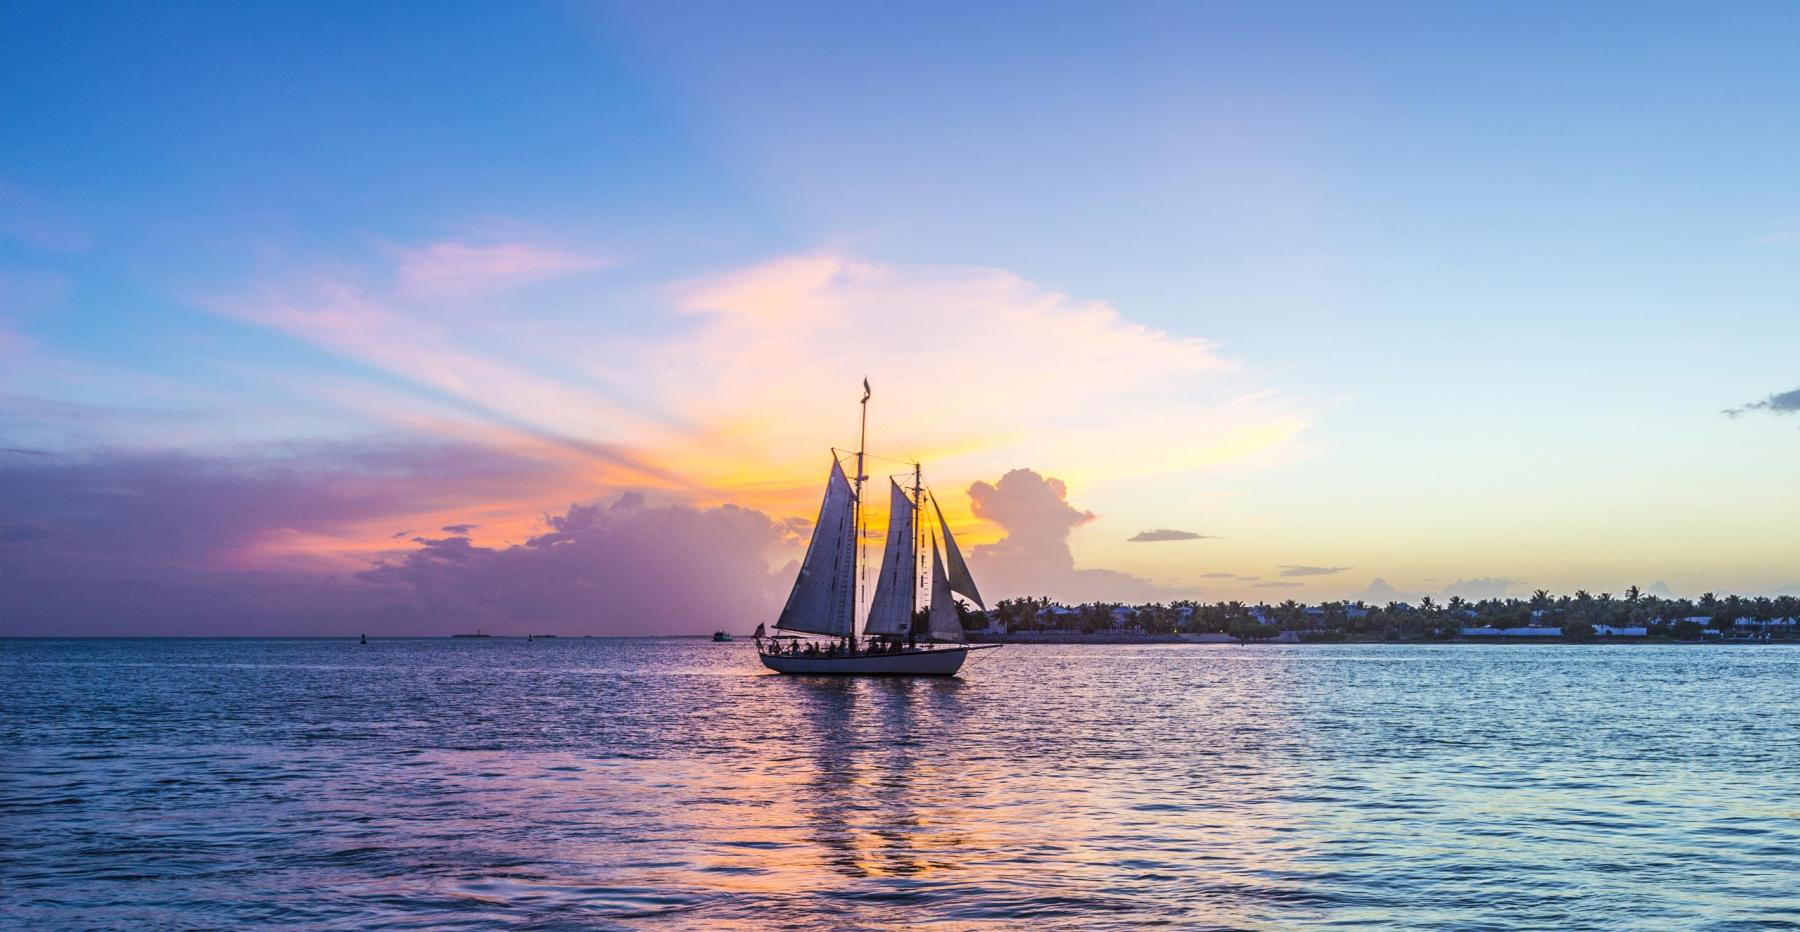 Sailboat on the water at sunset